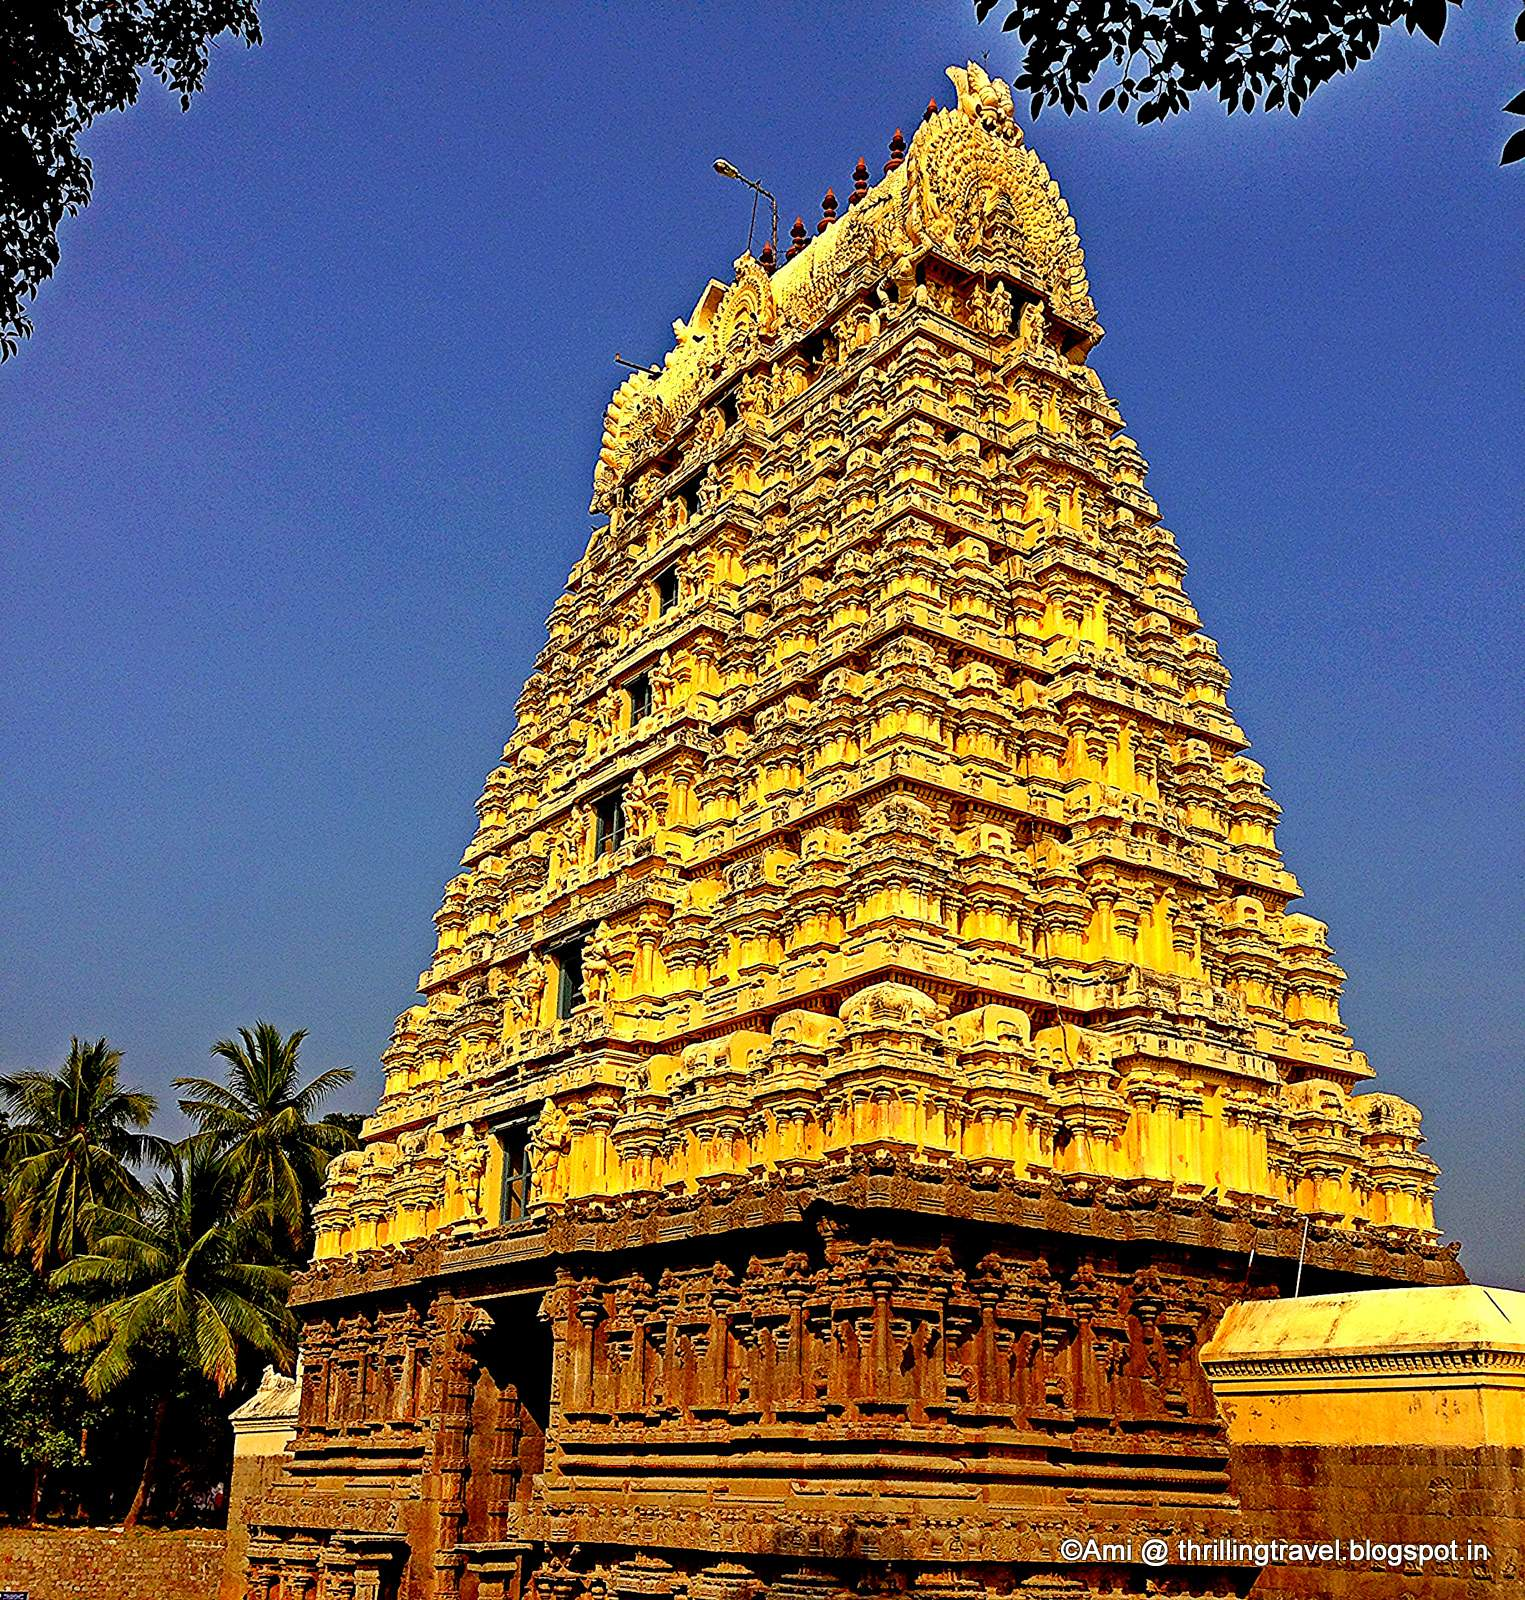 Tips to follow when visiting a Hindu Temple